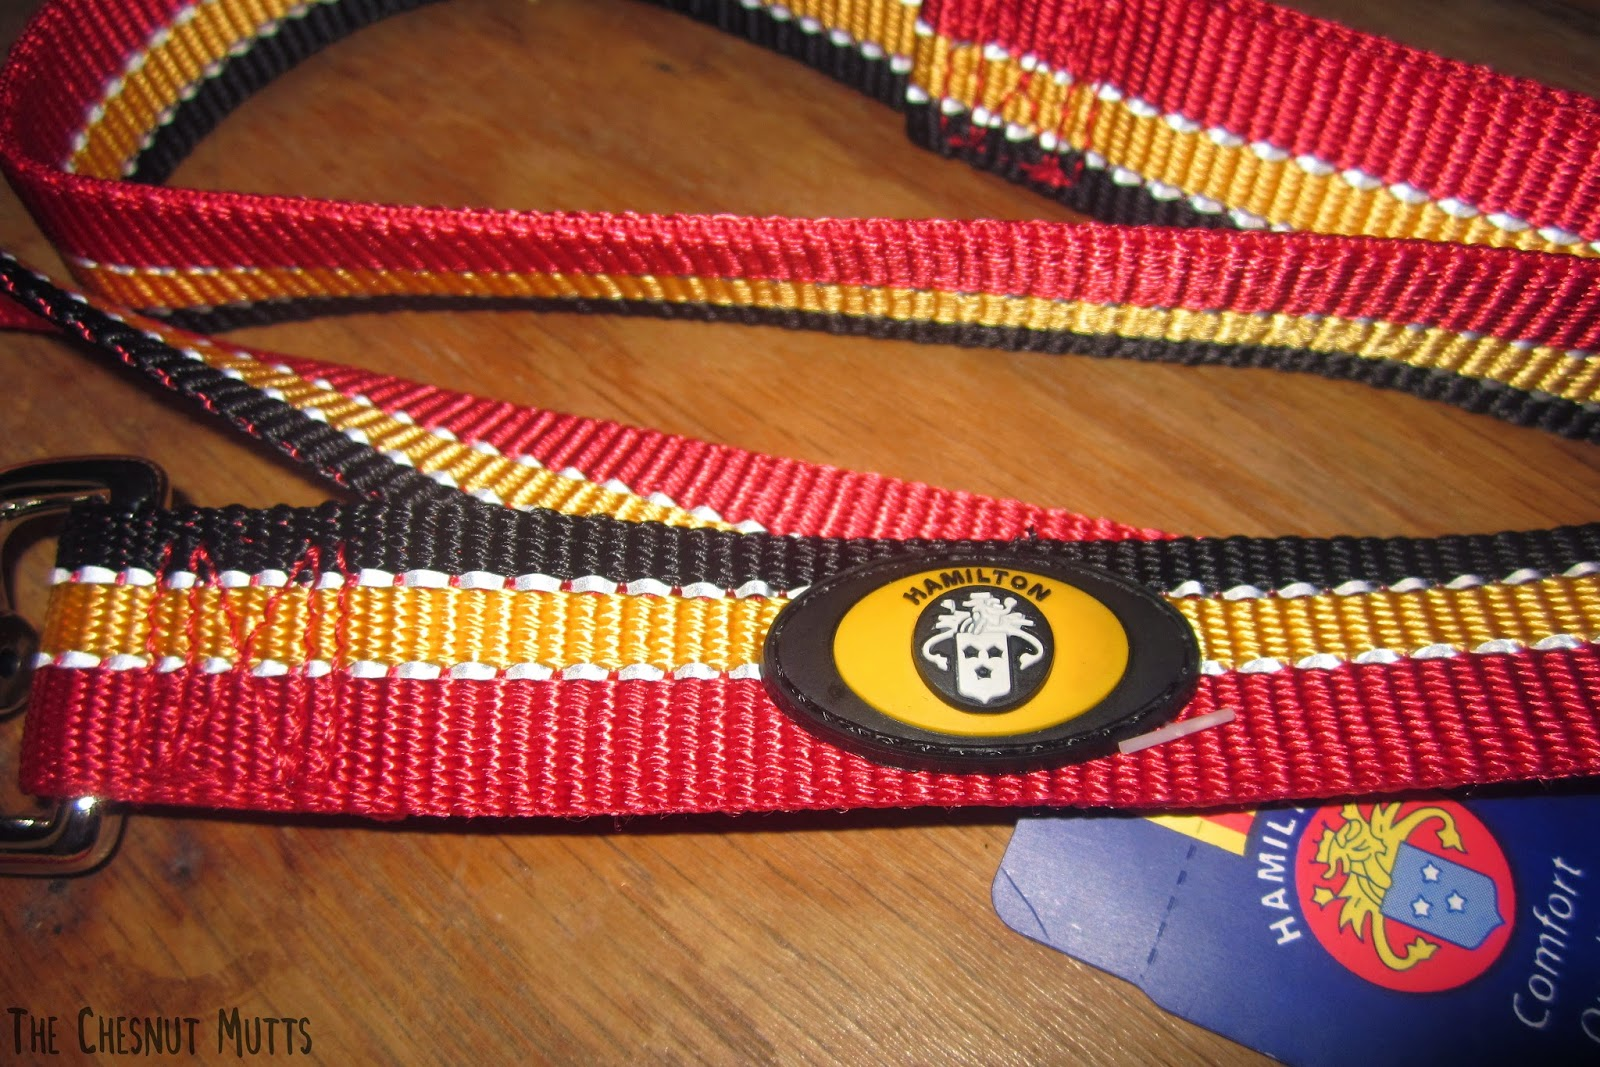 A picture showing the nylon detail of the leash